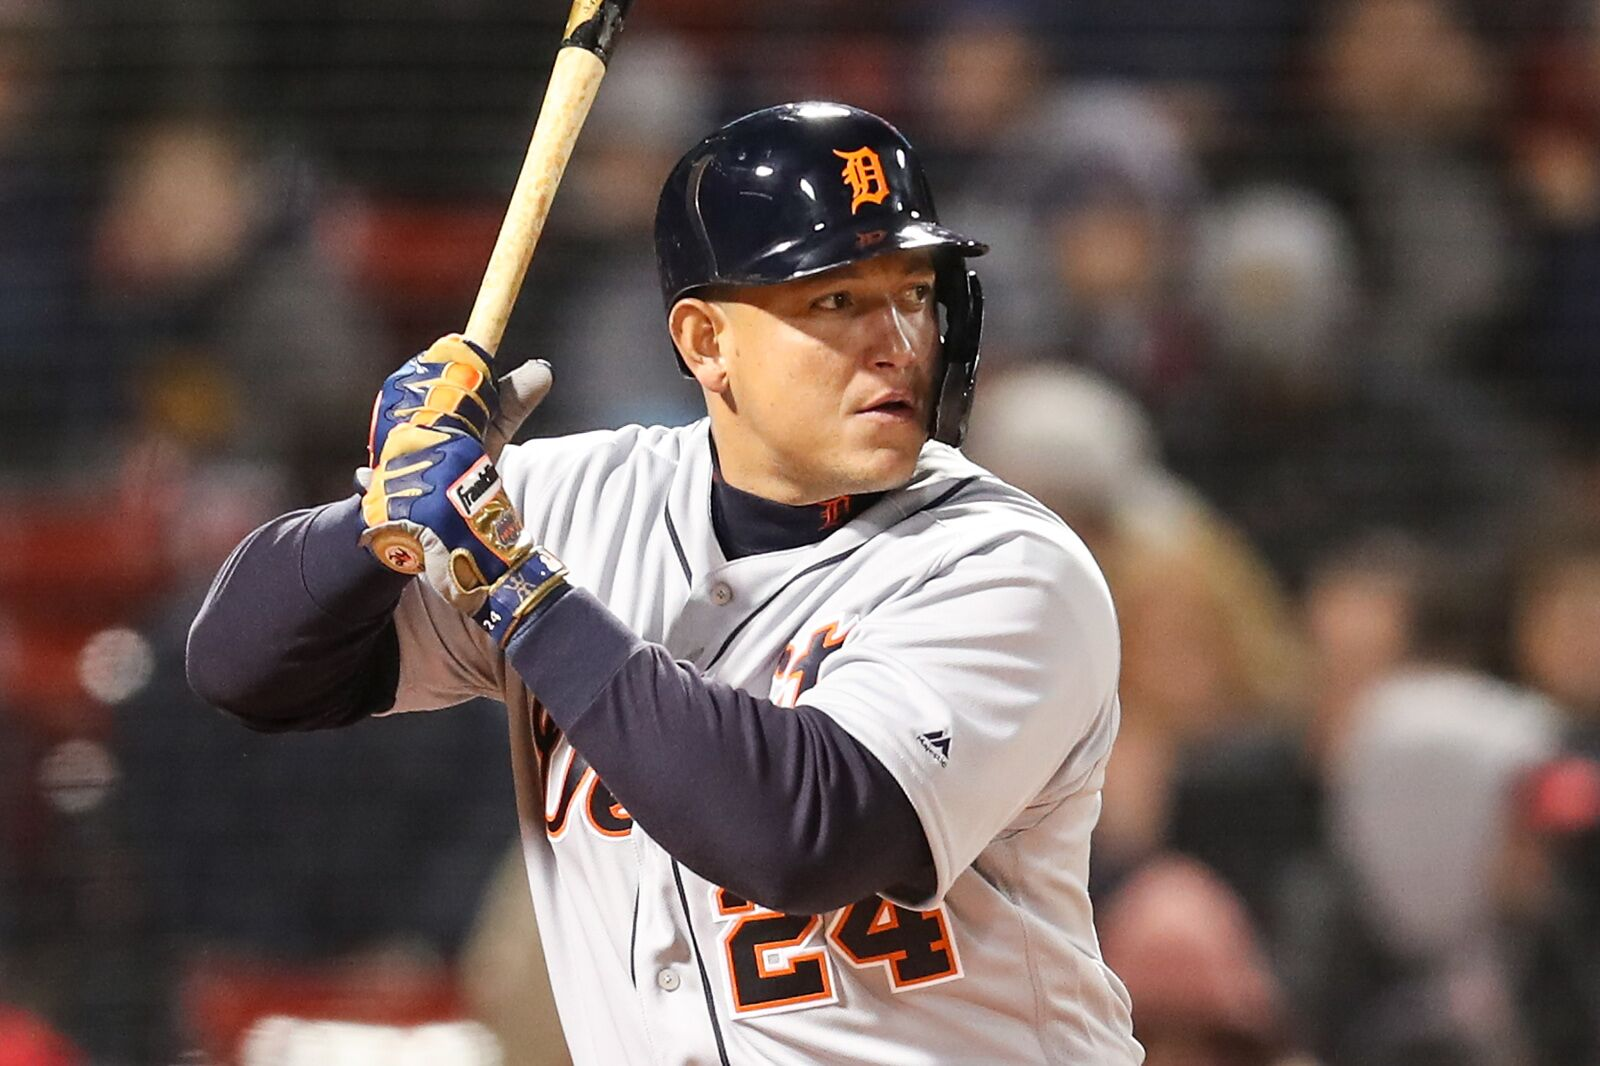 Miguel Cabrera acknowledges fading chance at 3,000 hits